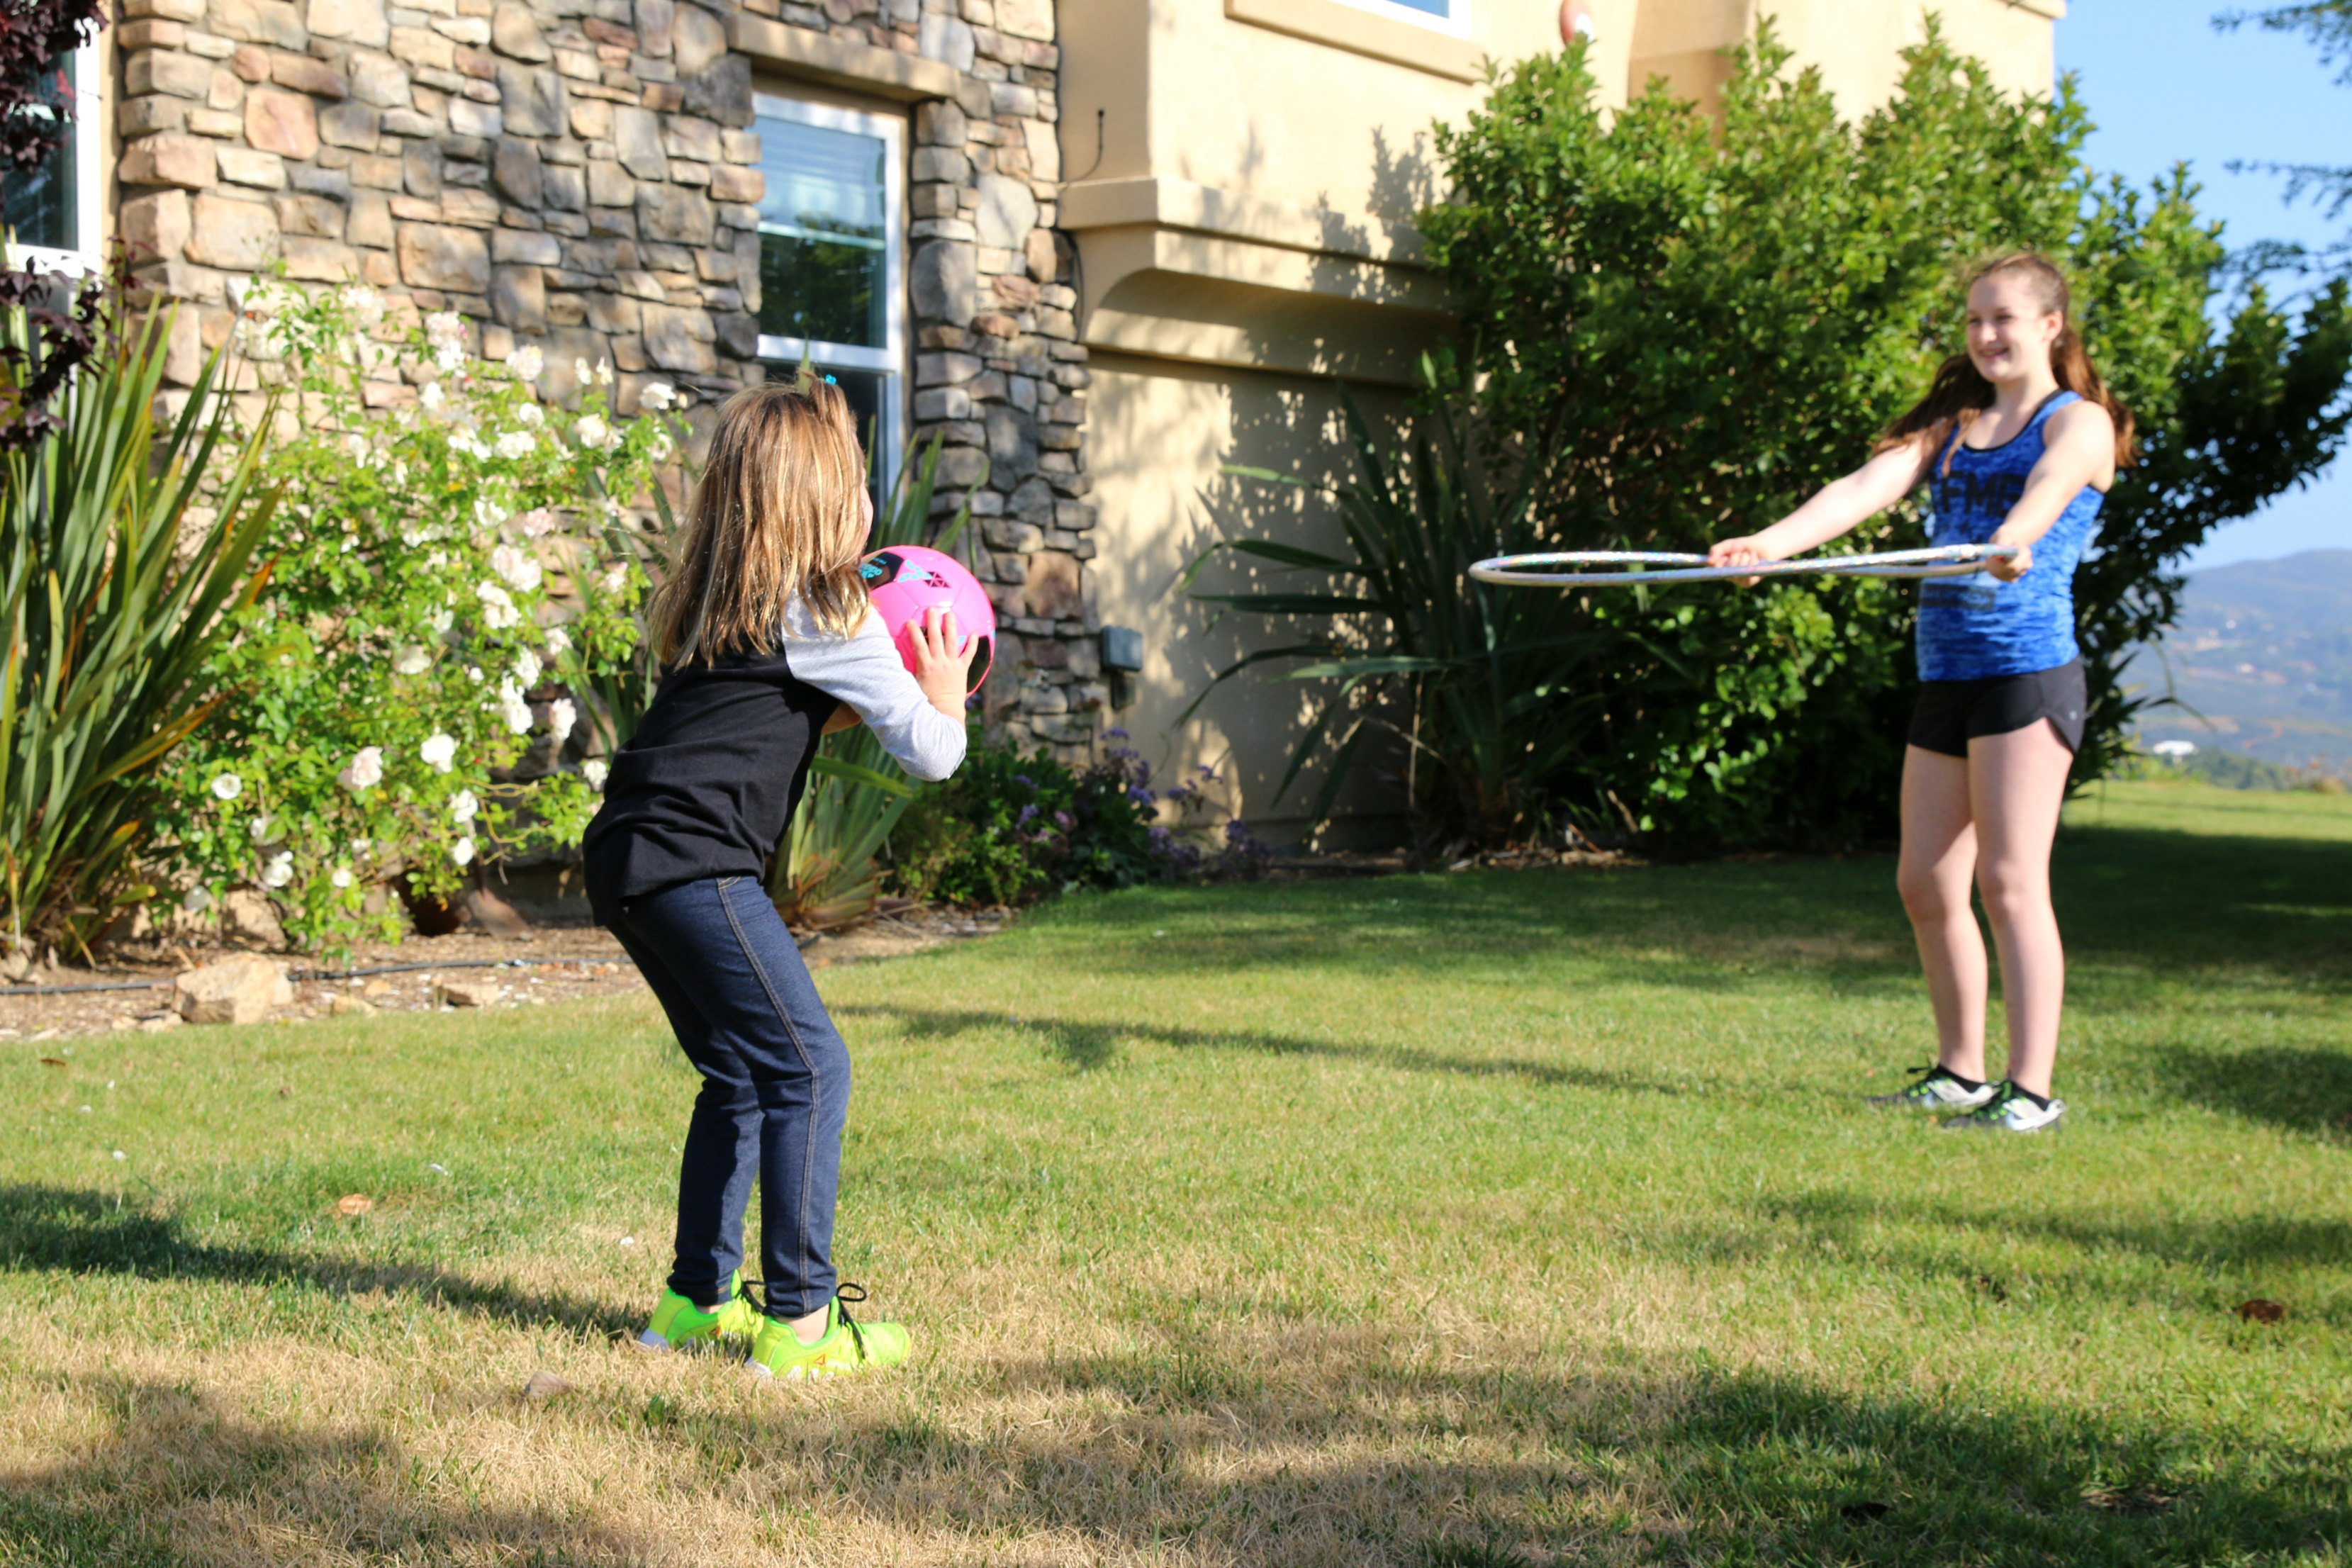 playing outdoor games